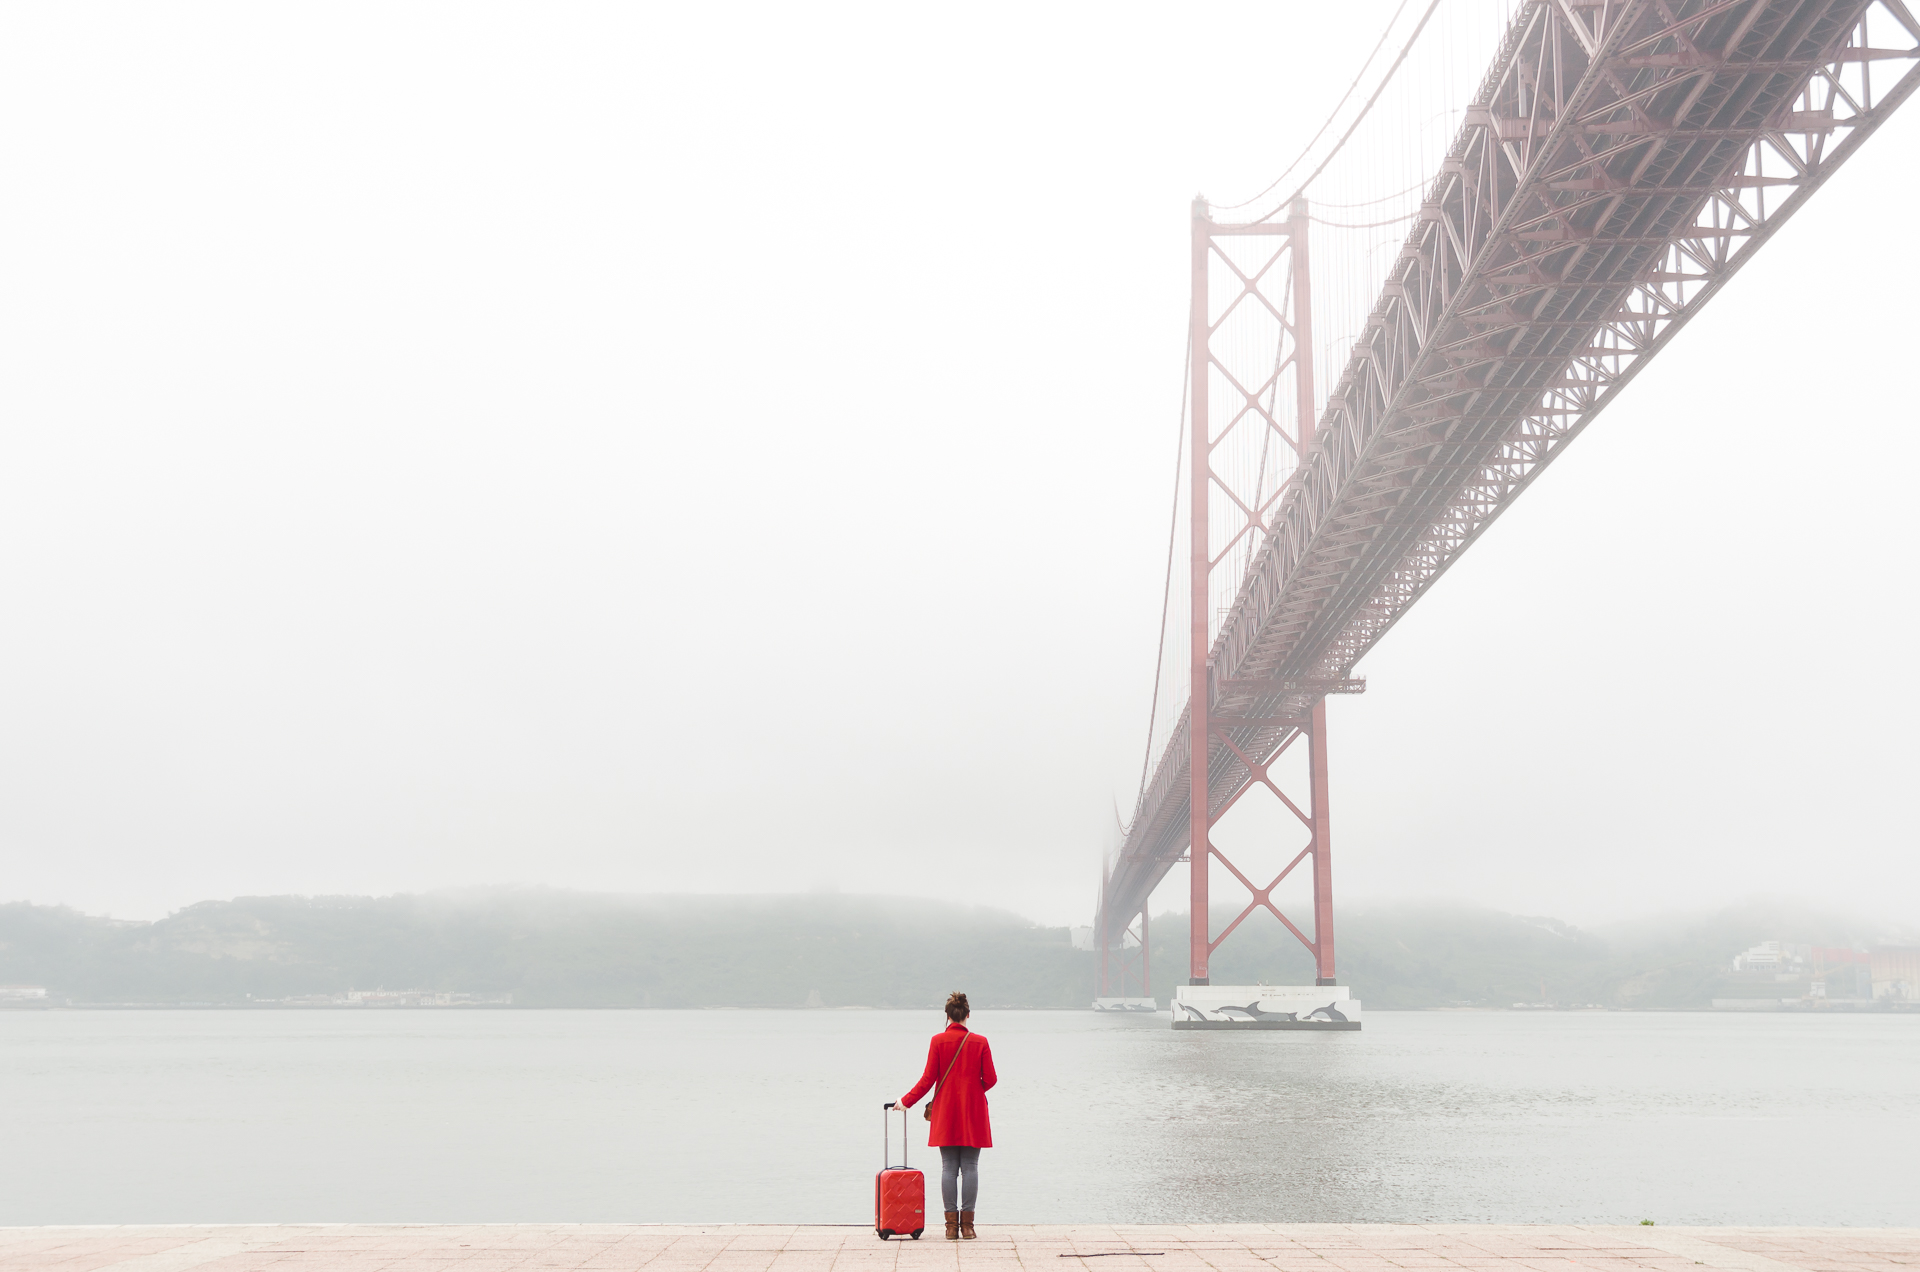 Ponte 25 de Abril, Lisbon, Portugal, bridge